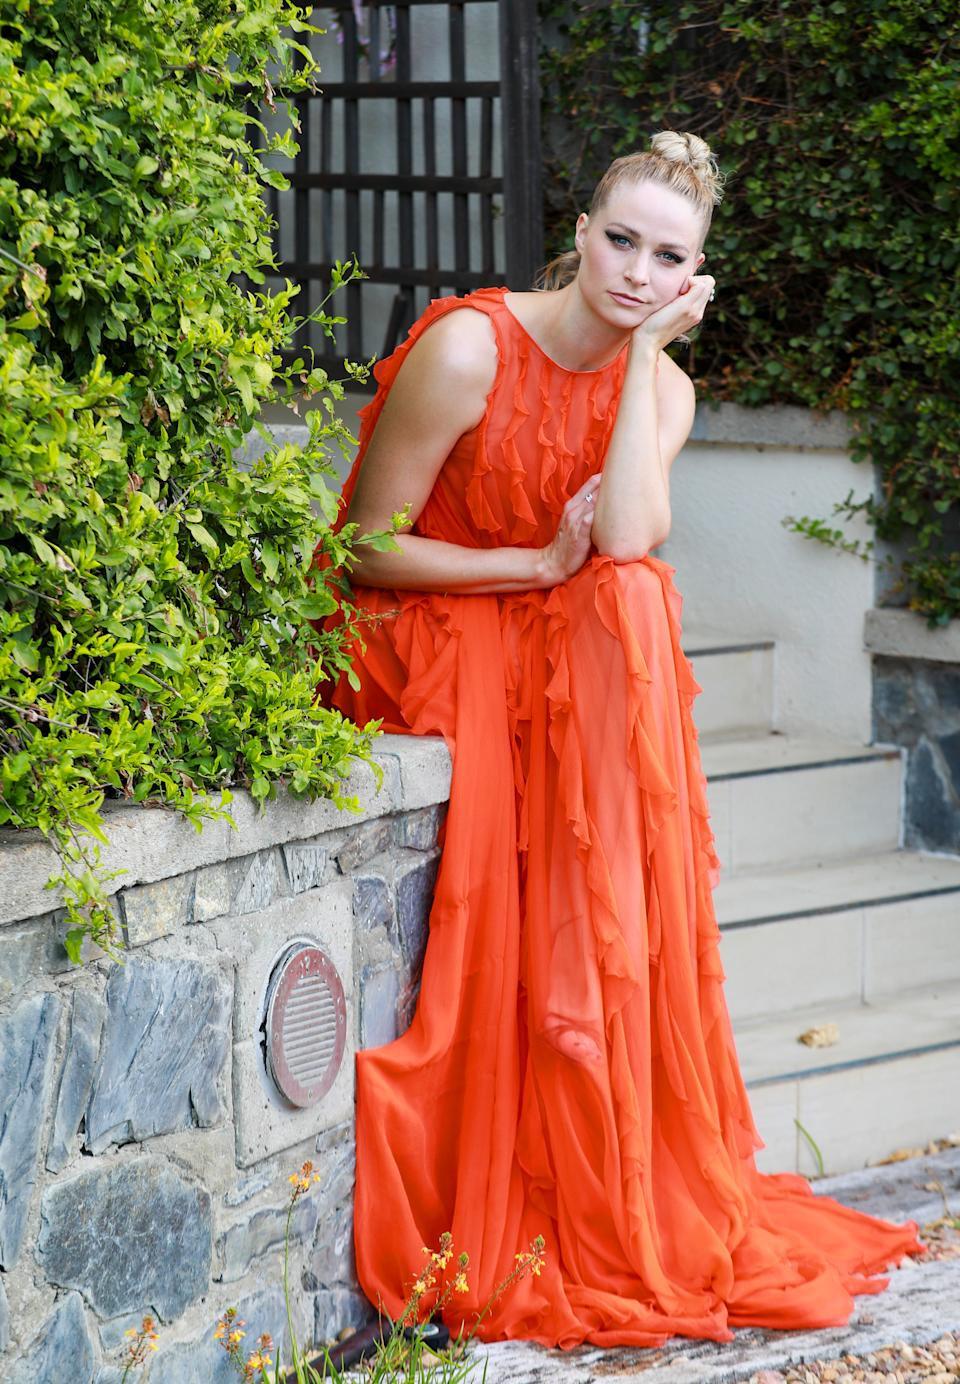 CAPE TOWN, SOUTH AFRICA - APRIL 11: Actress Niamh Algar nominated for best actress in a supporting role for